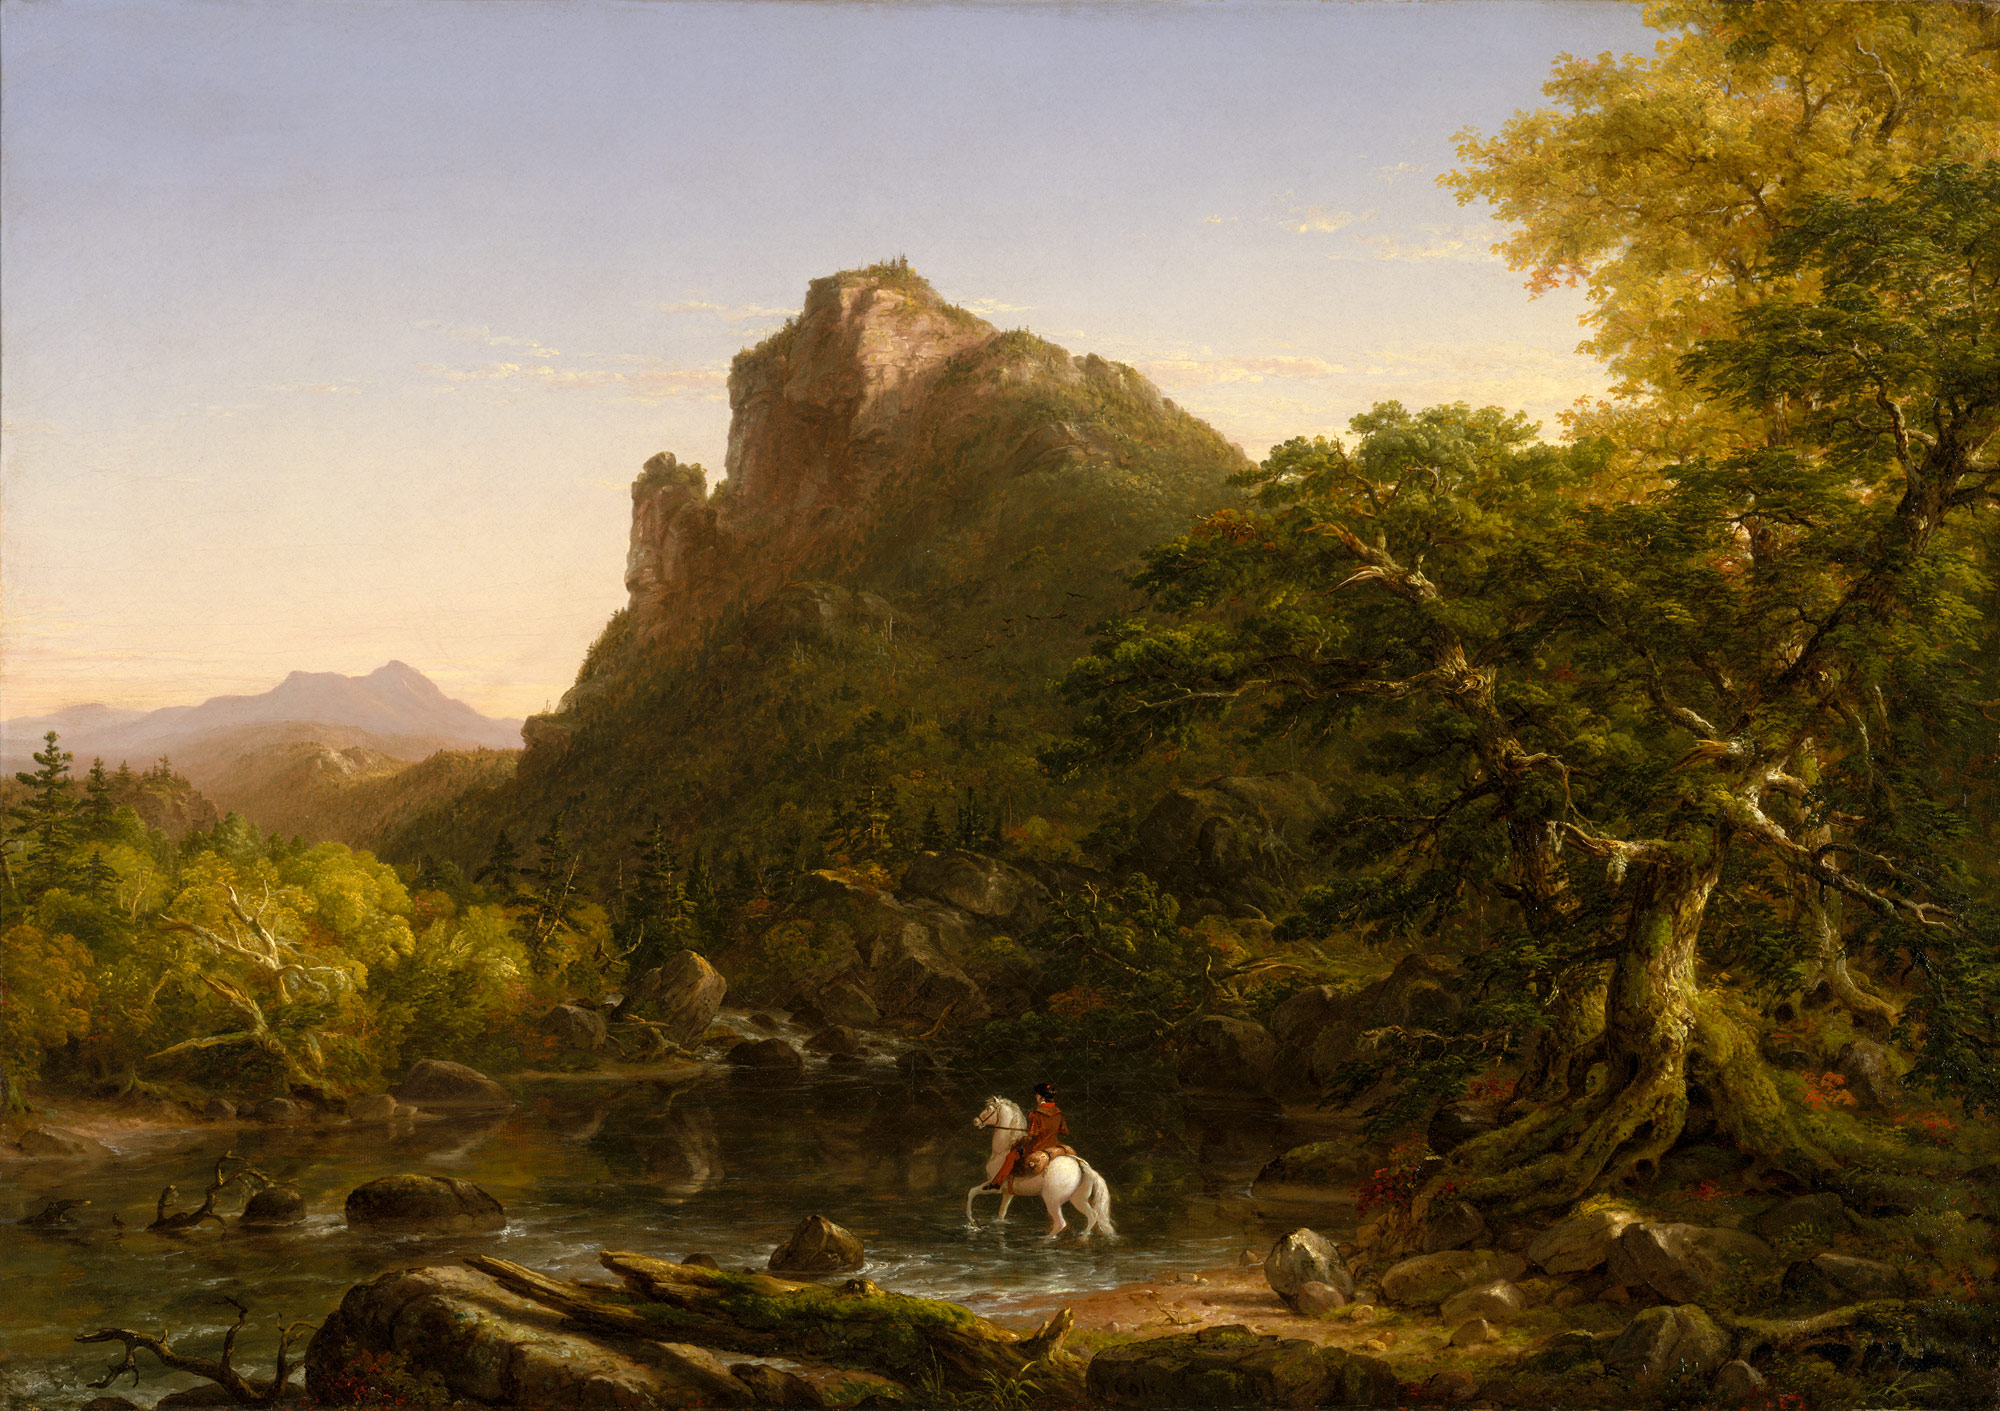 Early Fall Wallpaper The Mountain Ford Thomas Cole 15 30 63 Work Of Art